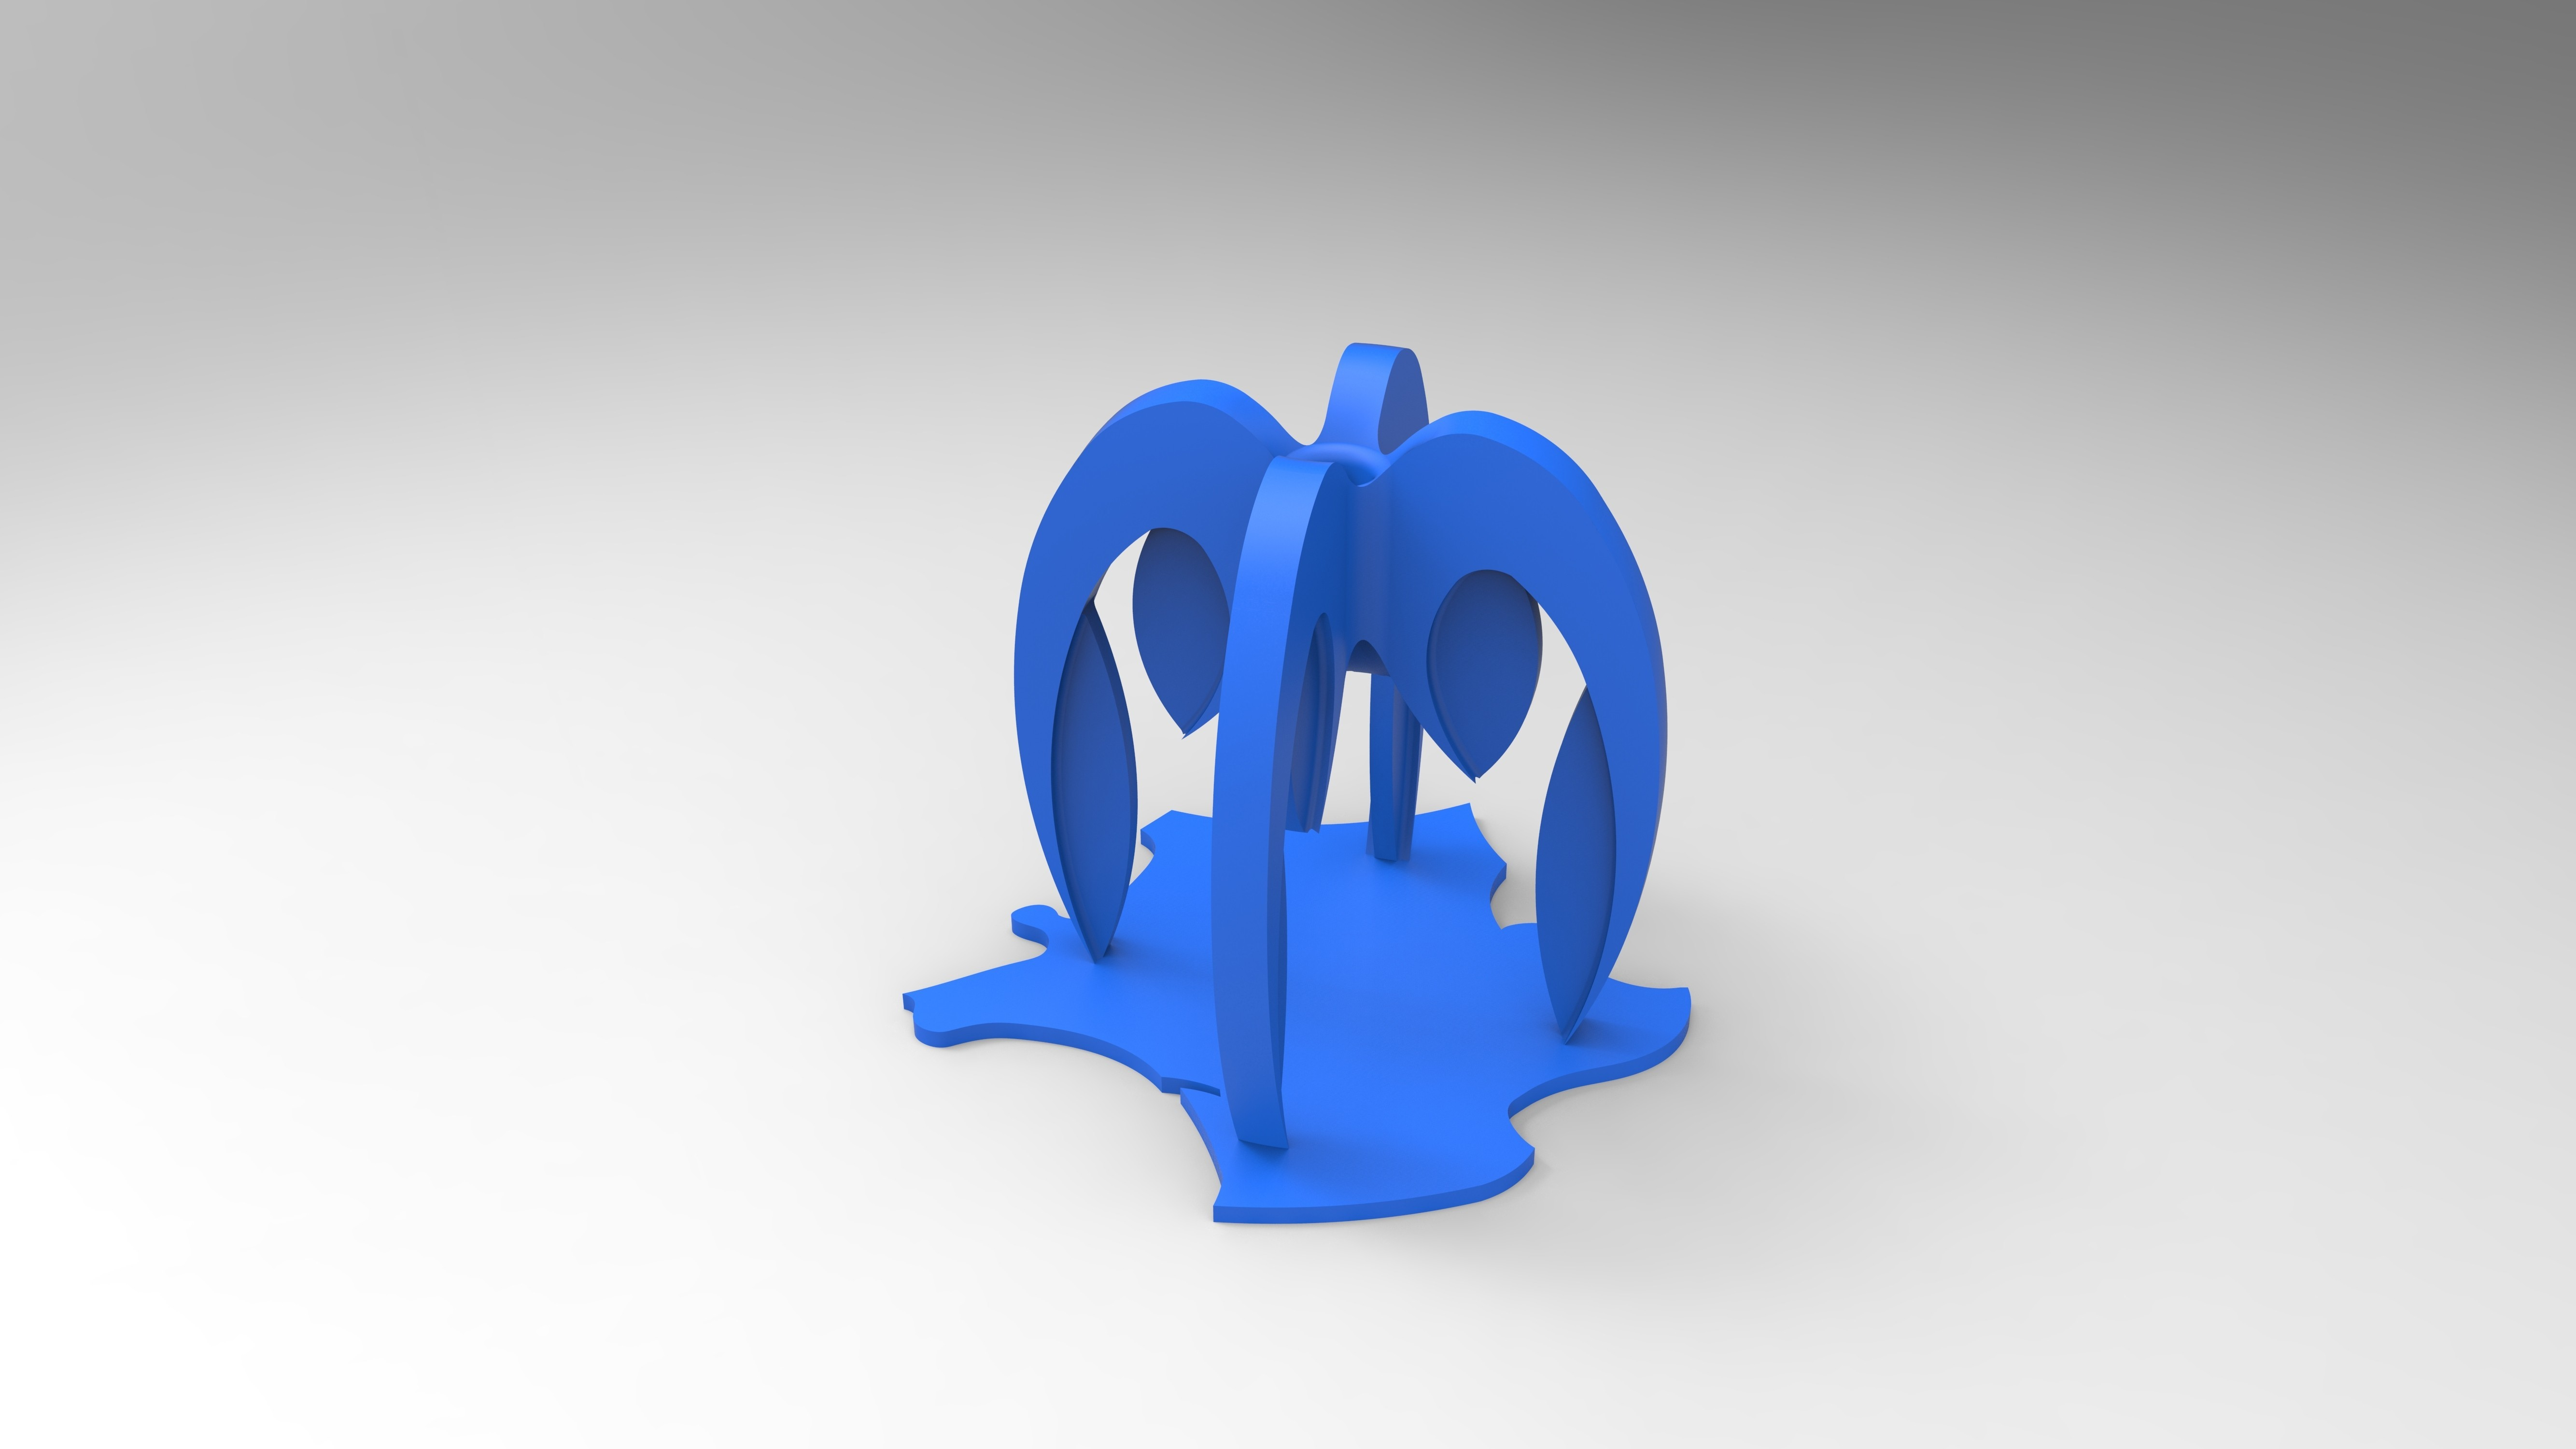 rendu bleu porte crayon sur la france.jpg Download free STL file Pencil holder composed of 4 STRATOMAKER logos implanted in France • Design to 3D print, GuilhemPerroud